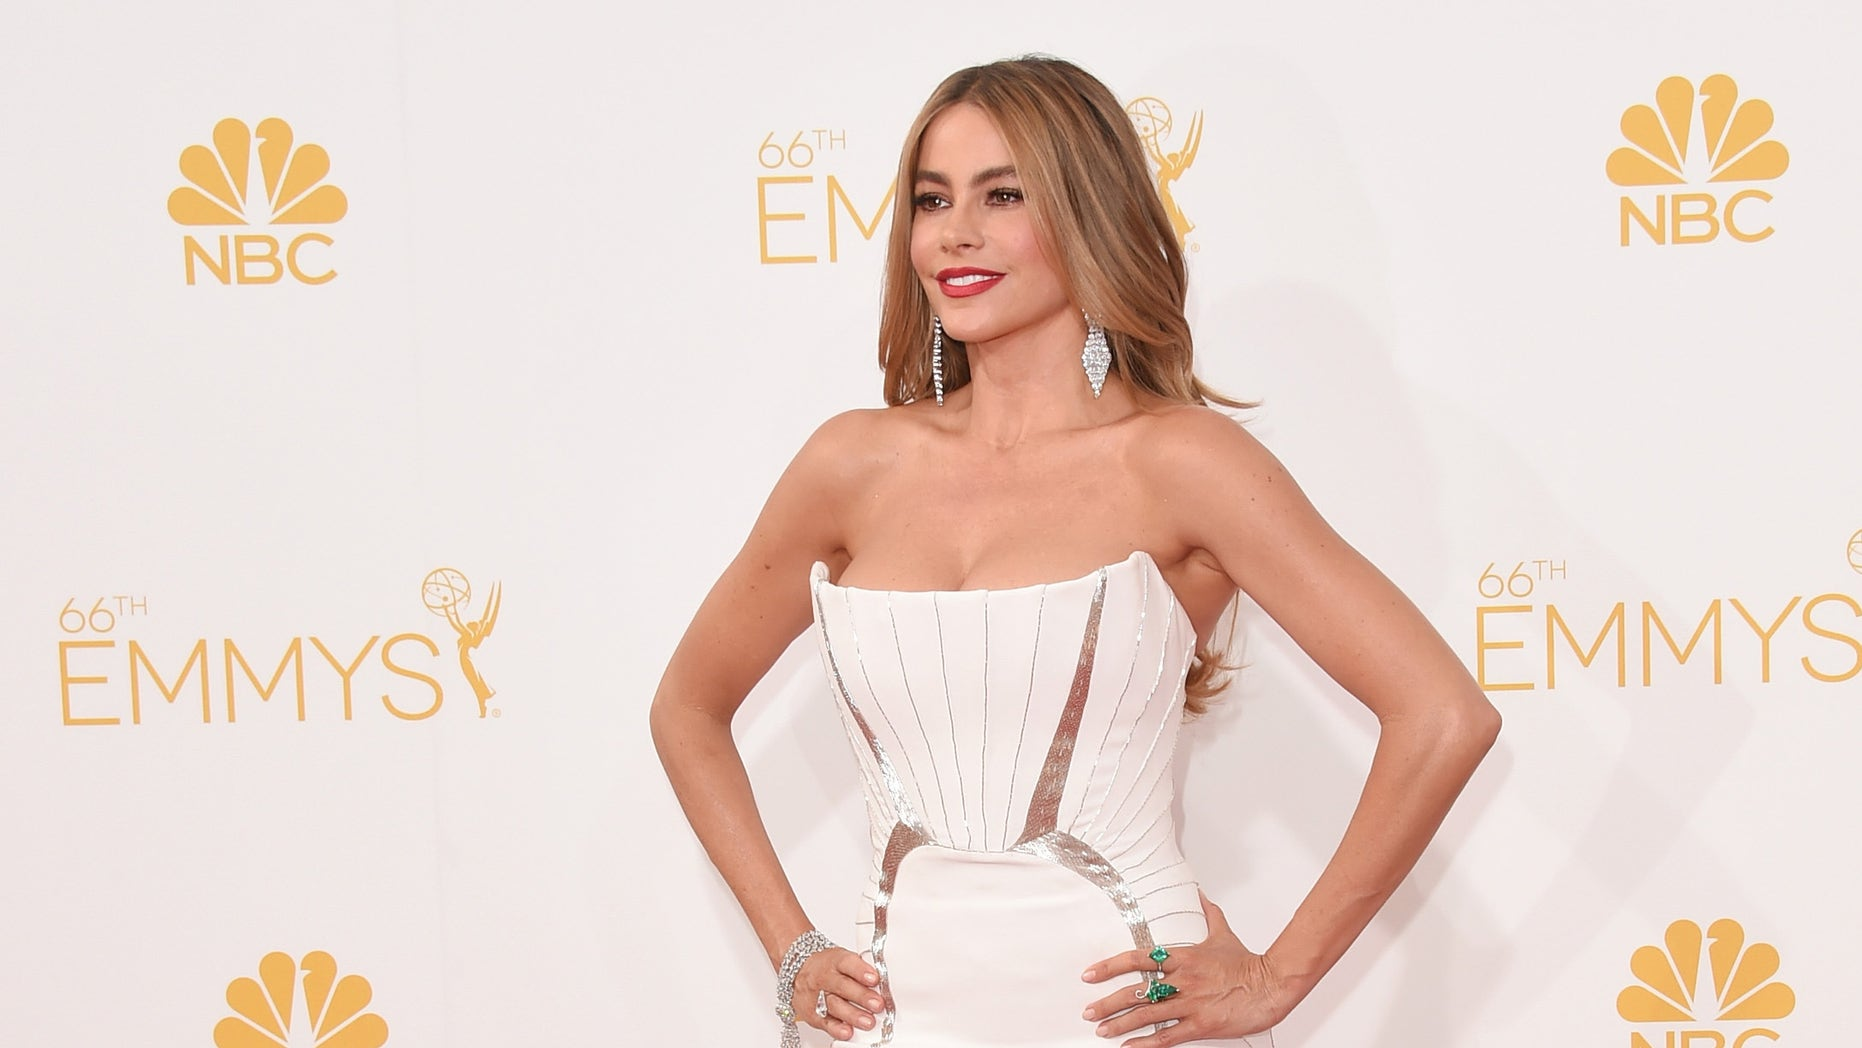 LOS ANGELES, CA - AUGUST 25:  Actress Sofia Vergara attends the 66th Annual Primetime Emmy Awards held at Nokia Theatre L.A. Live on August 25, 2014 in Los Angeles, California.  (Photo by Jason Merritt/Getty Images)